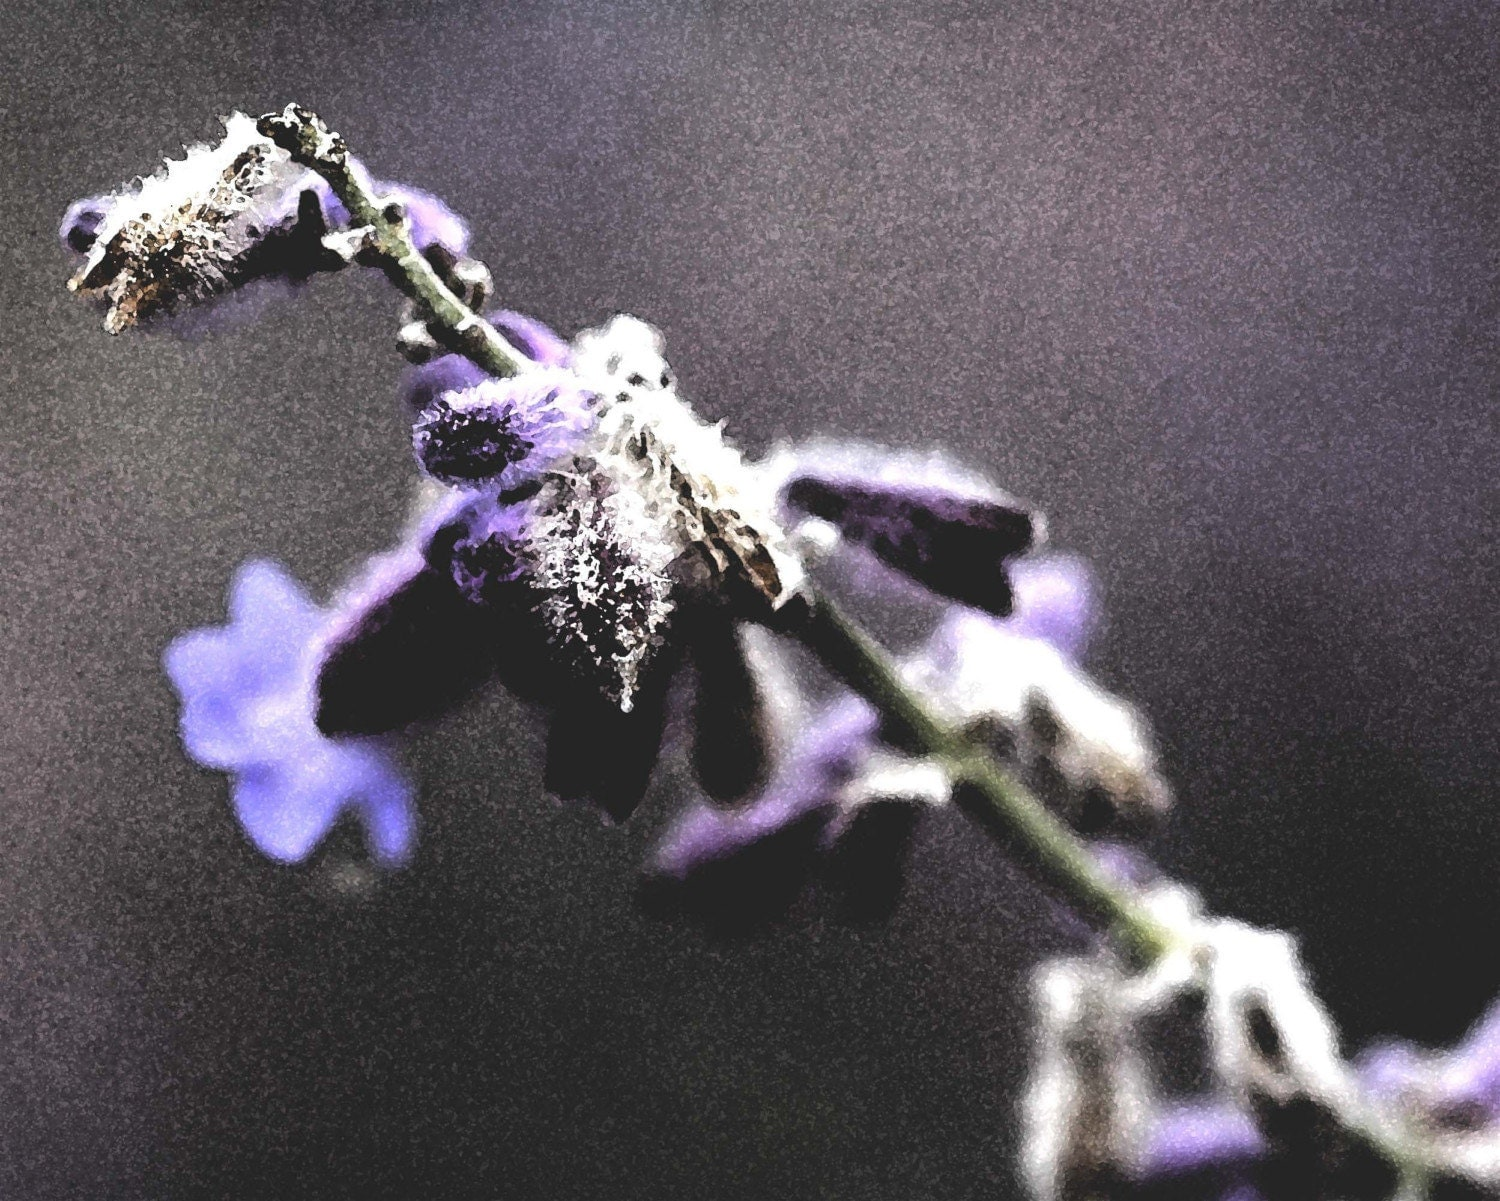 Muted purple flower photograph - 8x10 print